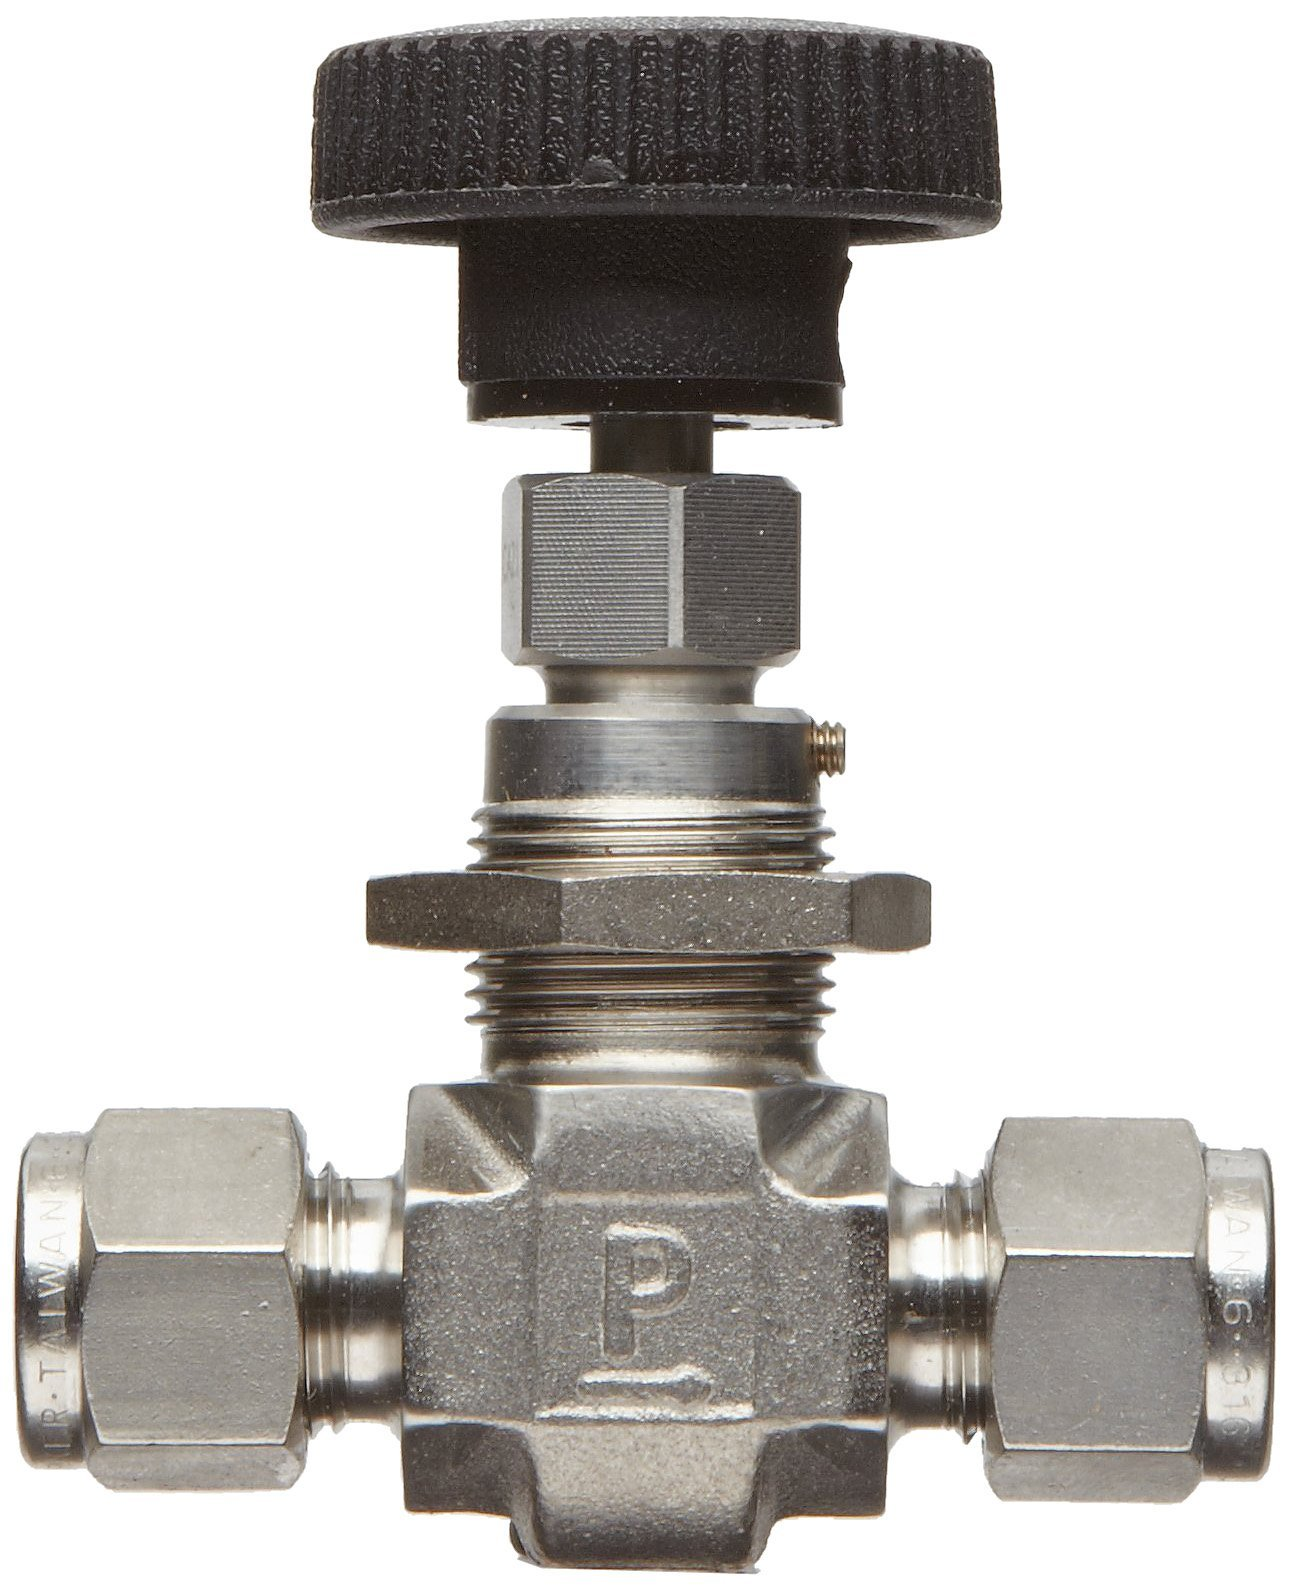 Parker NP6 Series Stainless Steel 316 Needle Valve, Inline, Hand Wheel, PCTFE Tipped Stem, 3/8'' CPI Compression Fitting